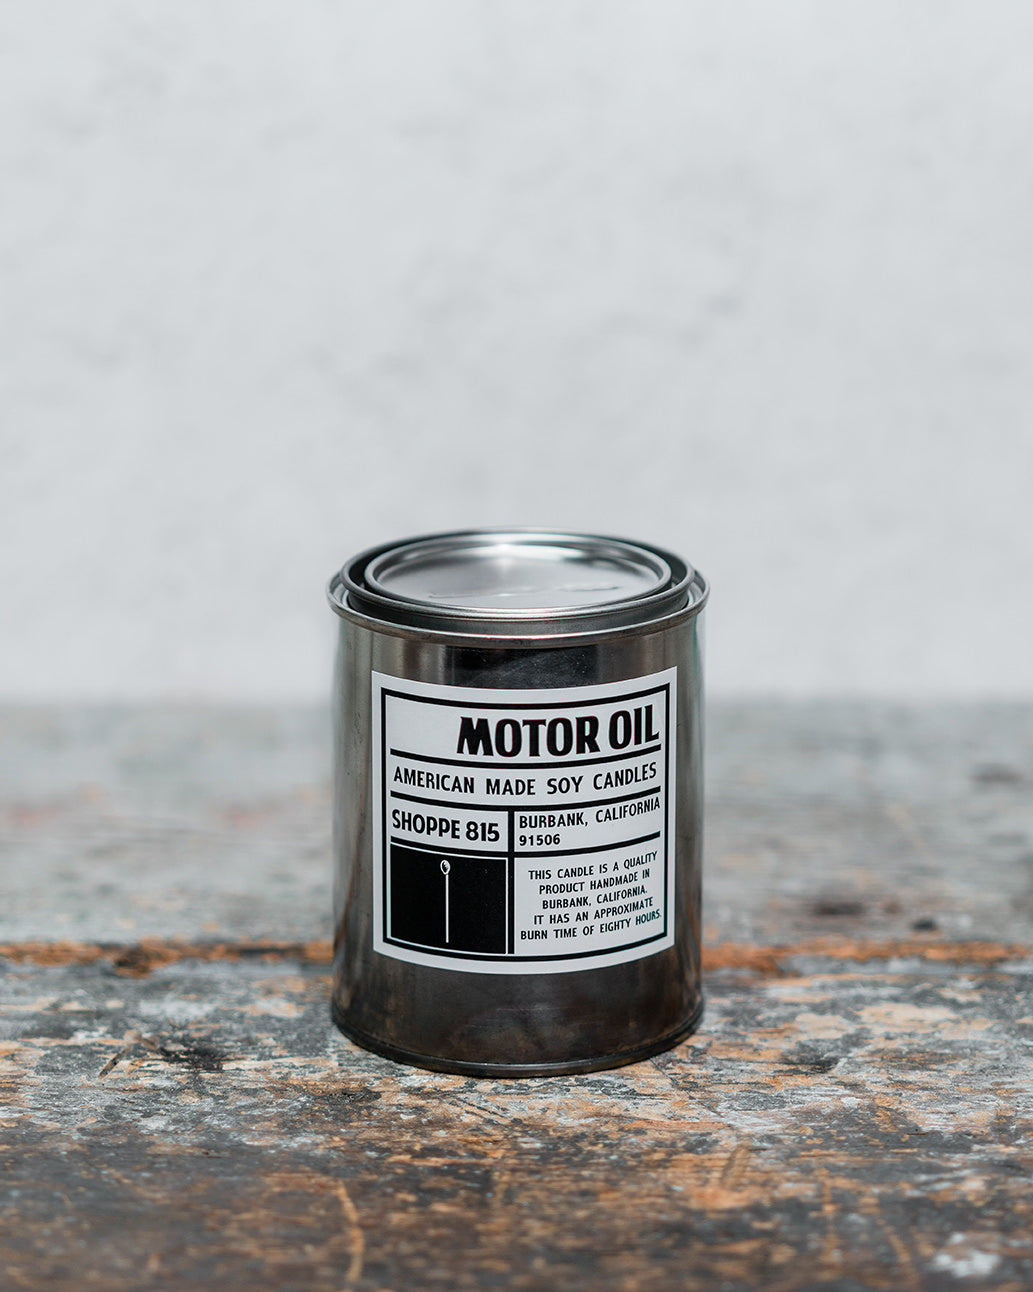 Motor Oil gender neutral tin candle on wooden shelf